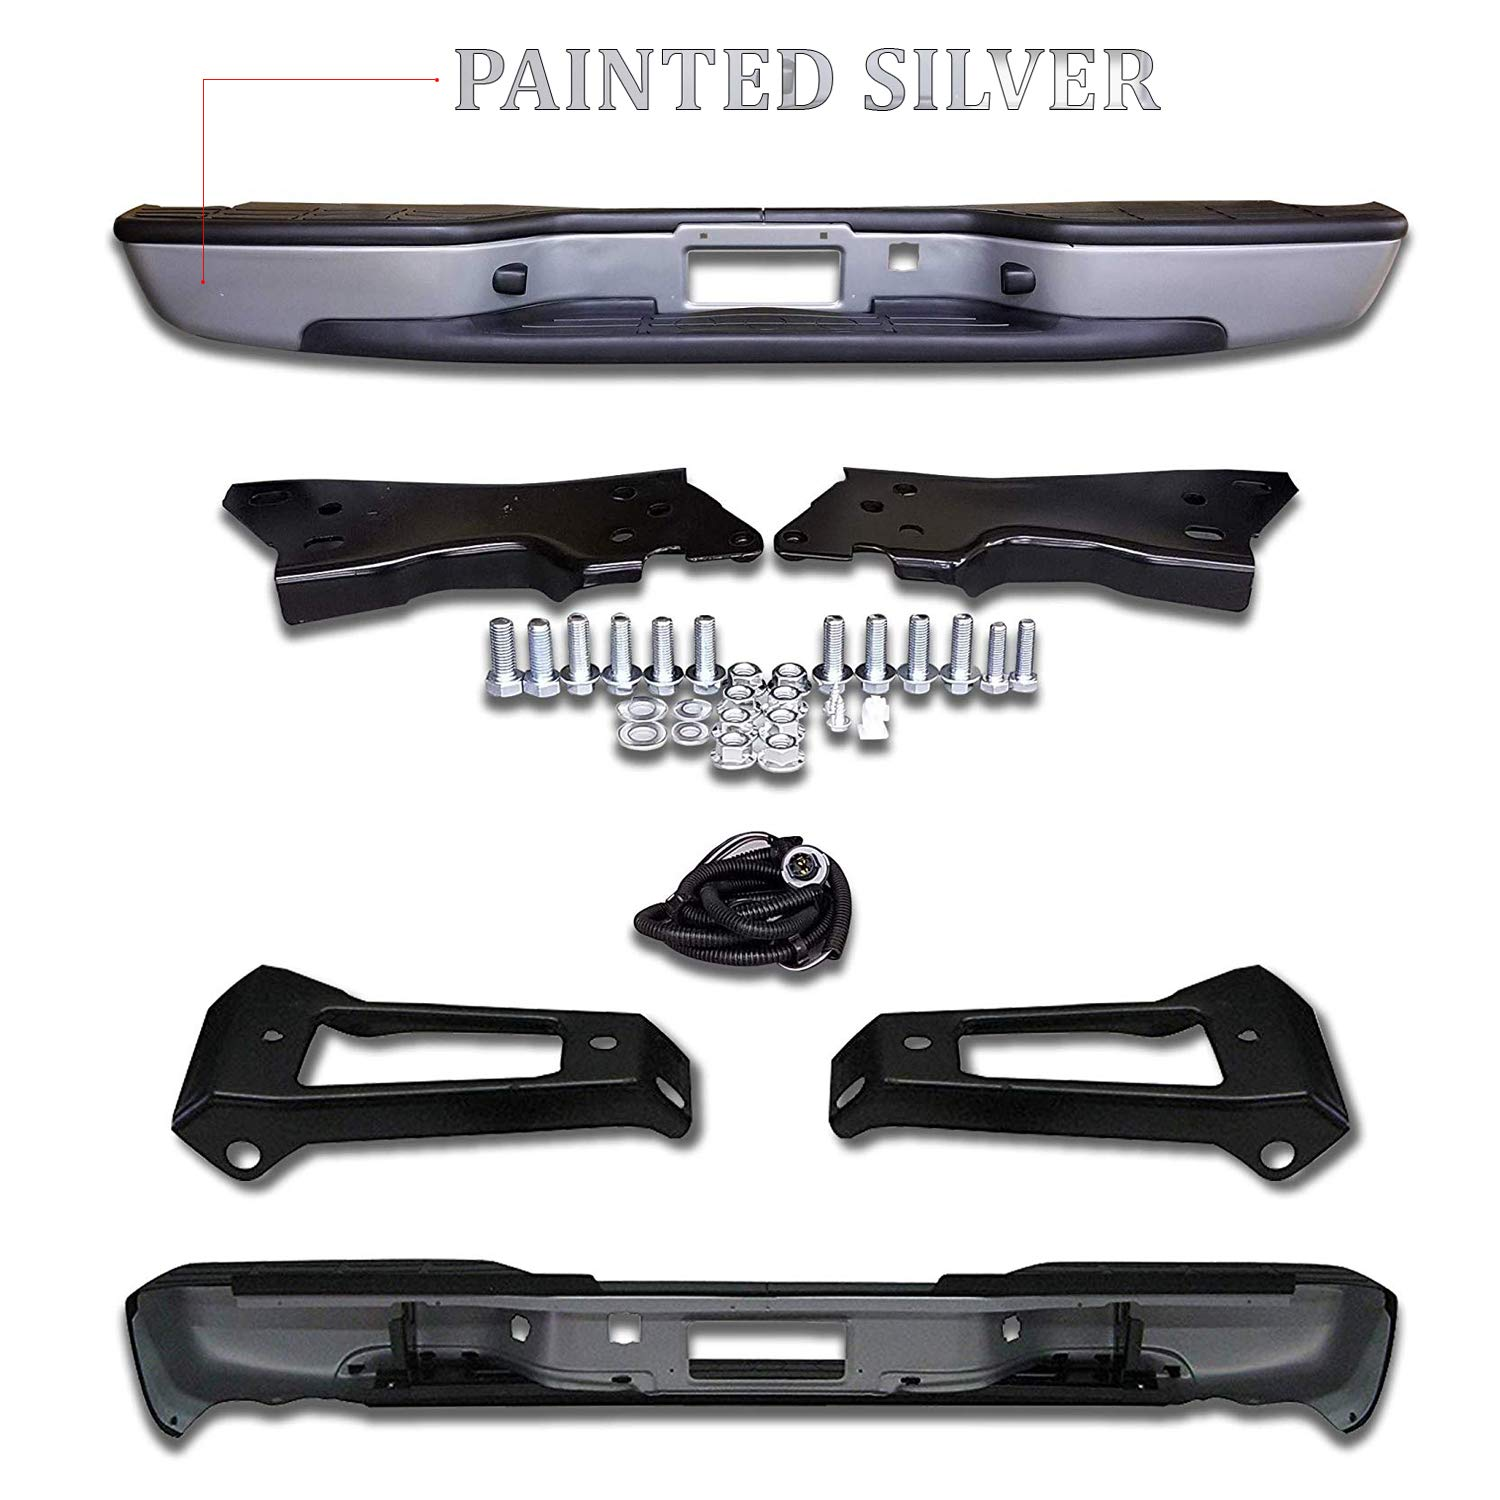 Make Auto Parts Manufacturing Rear Painted Silver Step Bumper Assembly Fleetside With Brackets Light Kit Bolts Bar For Chevrolet Silverado 1999-2006 / GMC Sierra 1500 1999-2006 - Partslink GM1103124